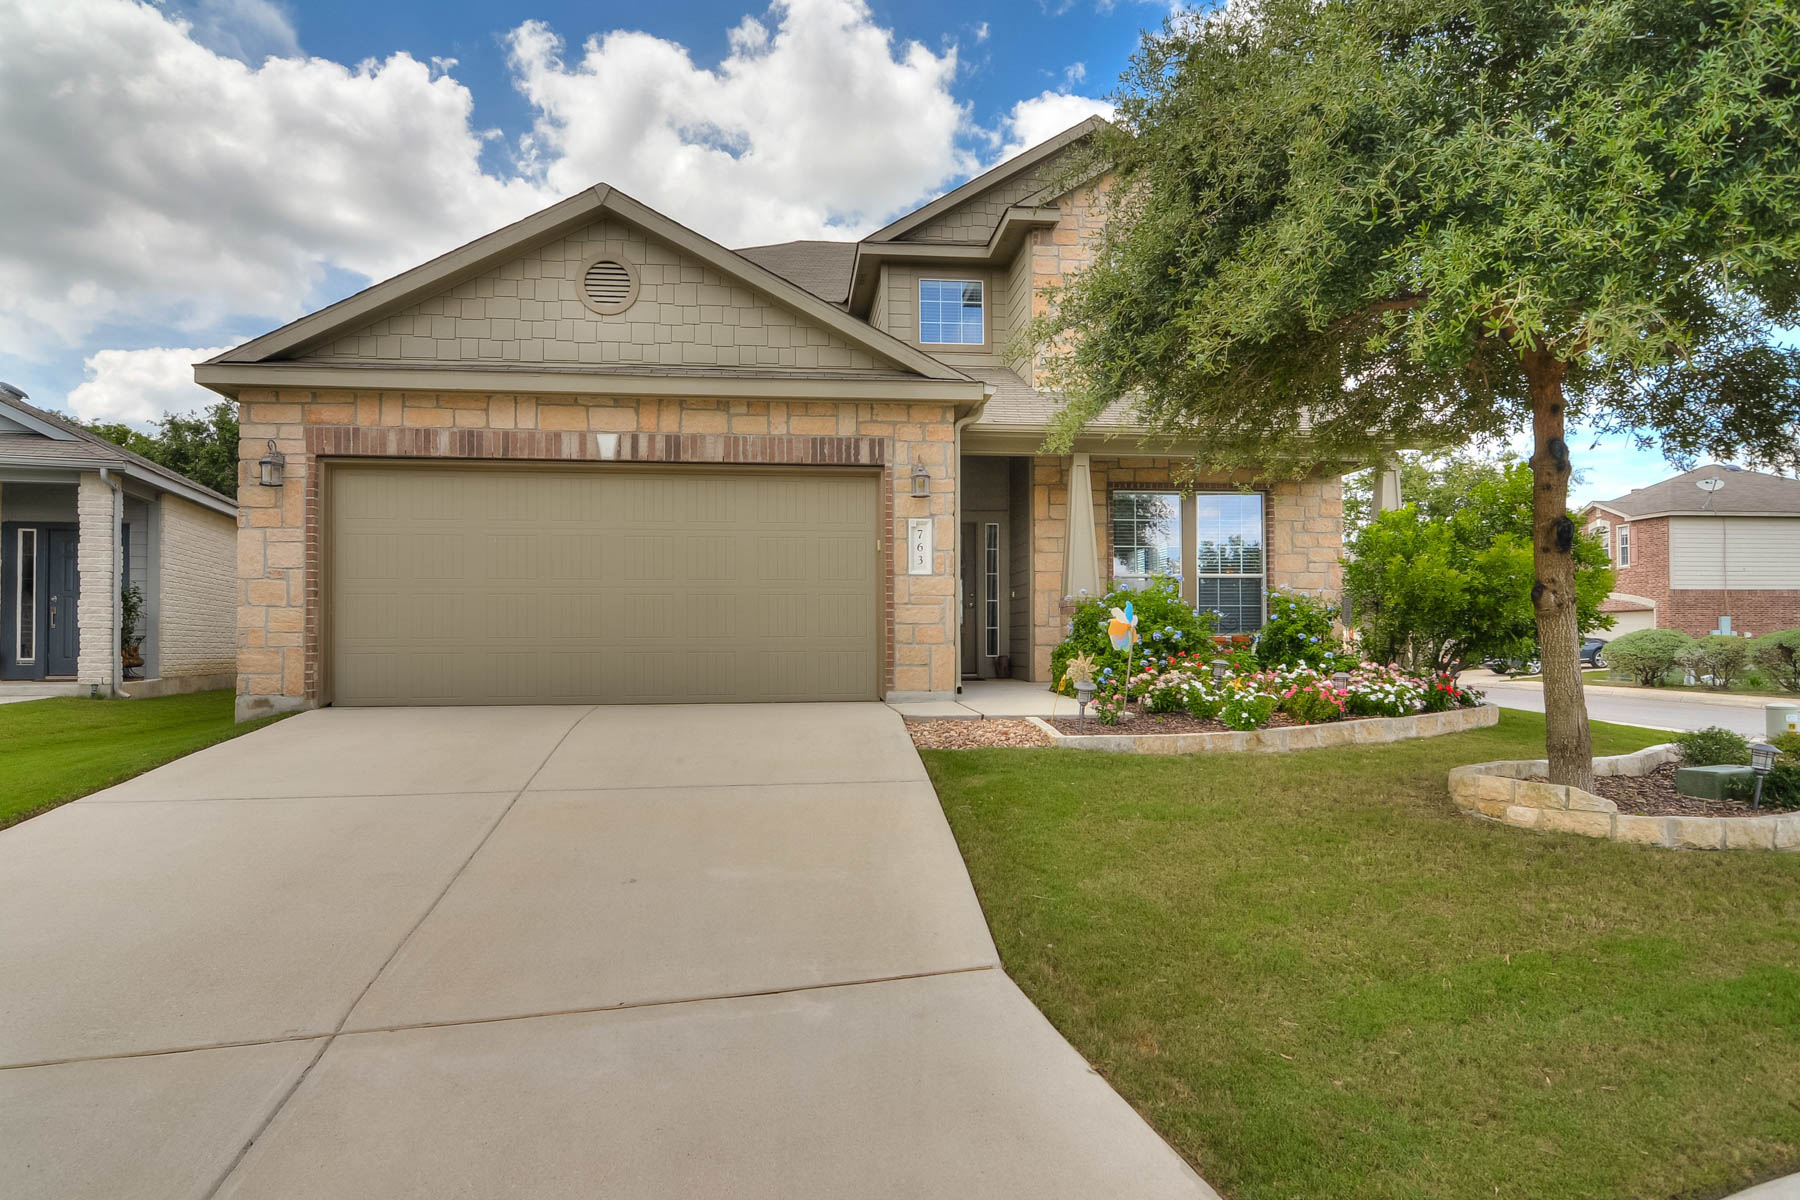 Additional photo for property listing at Beautiful Home on a Corner Lot in Silverado Hills 763 Trinity Star San Antonio, Texas 78260 Estados Unidos